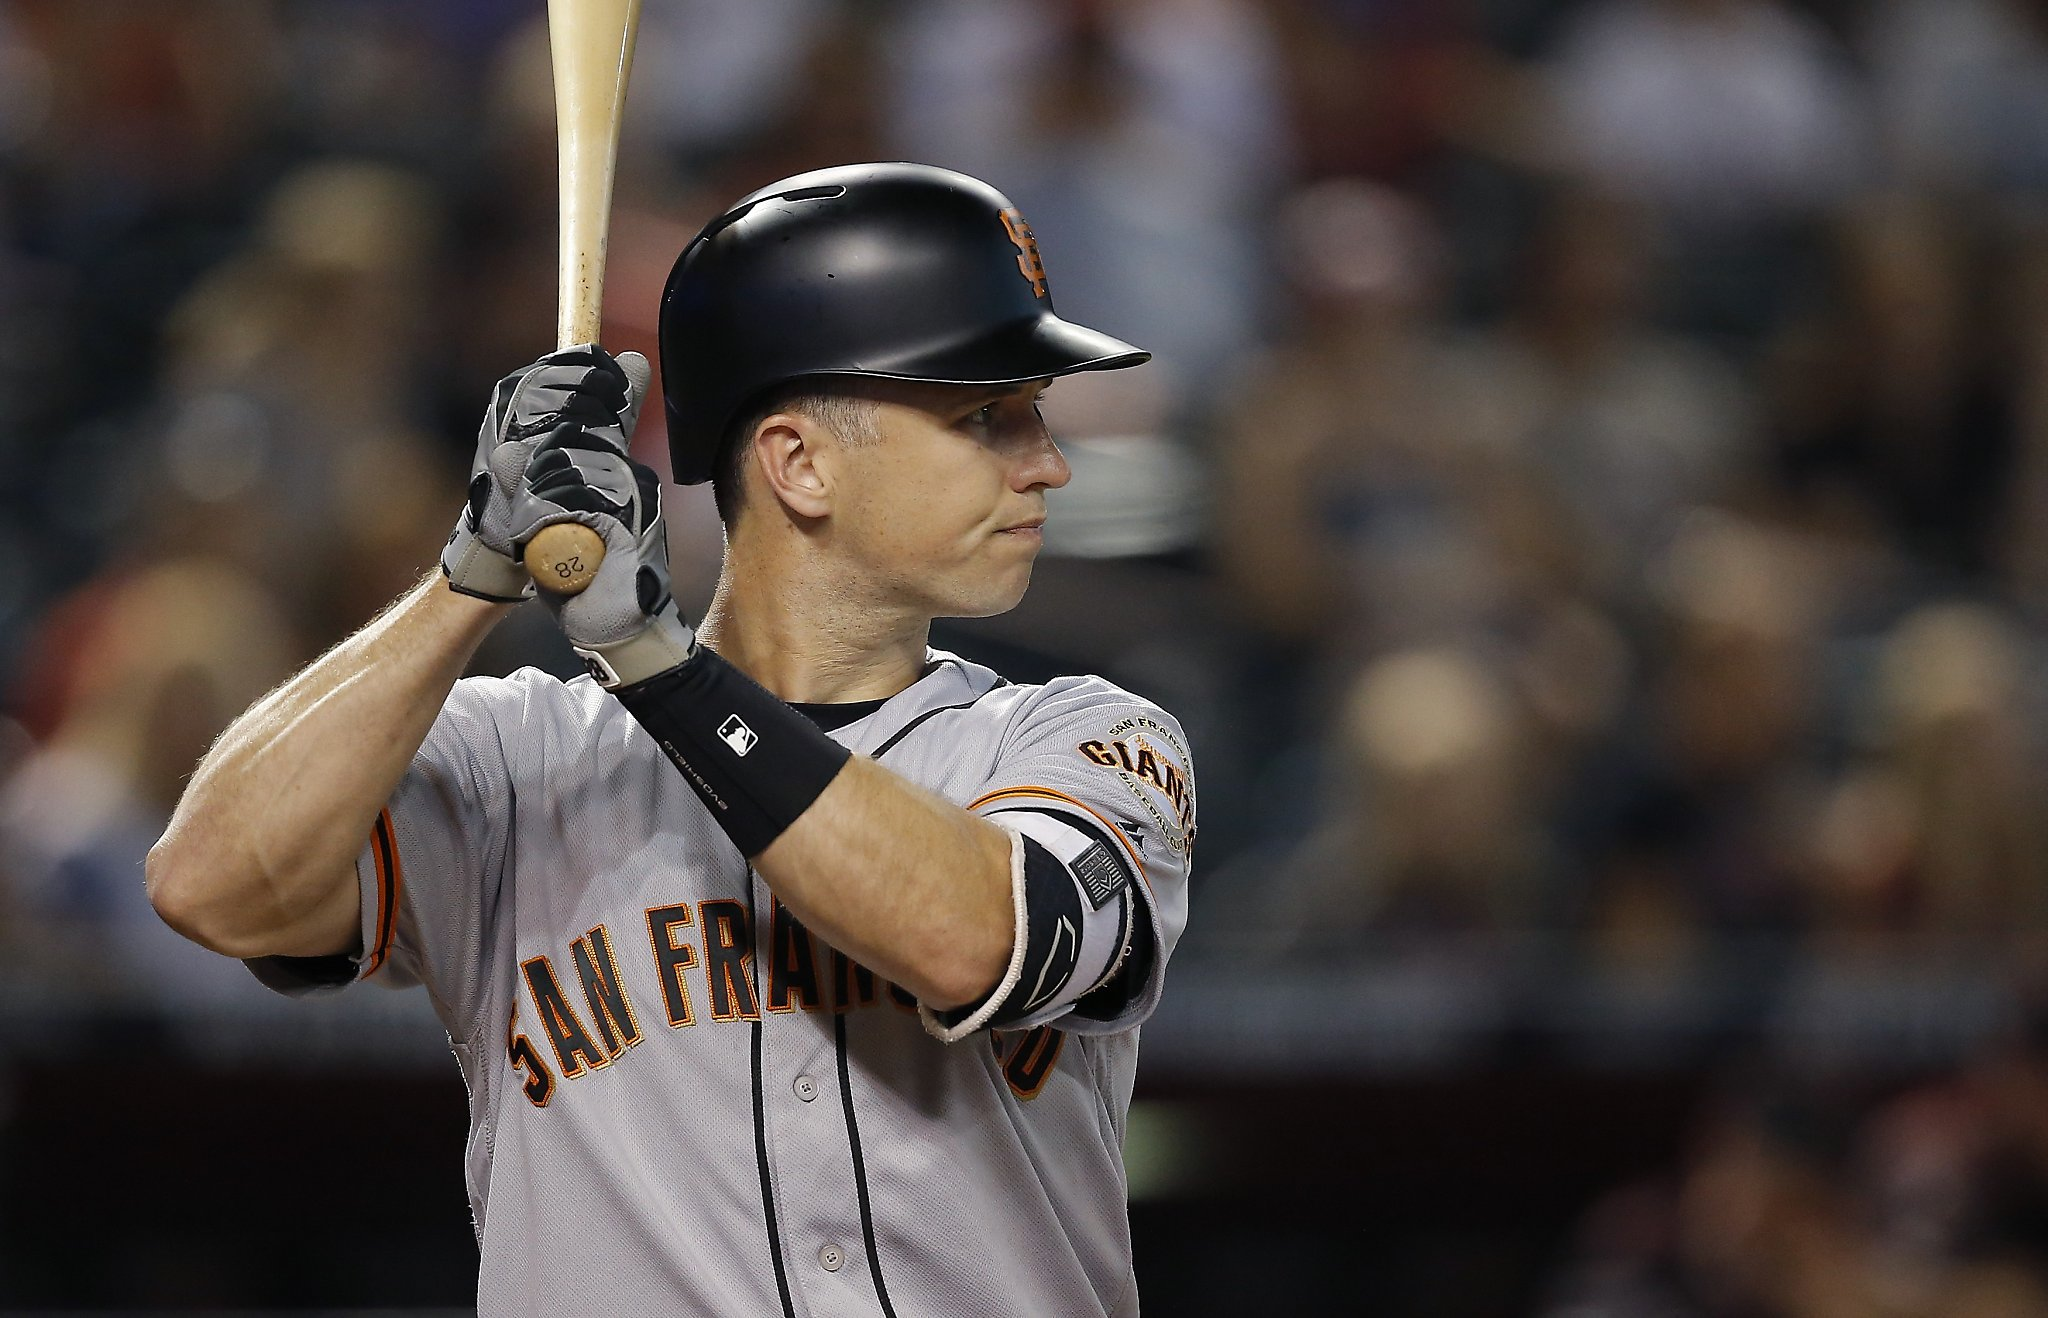 Buster Posey Biography height weight statistics wife debut team net worth